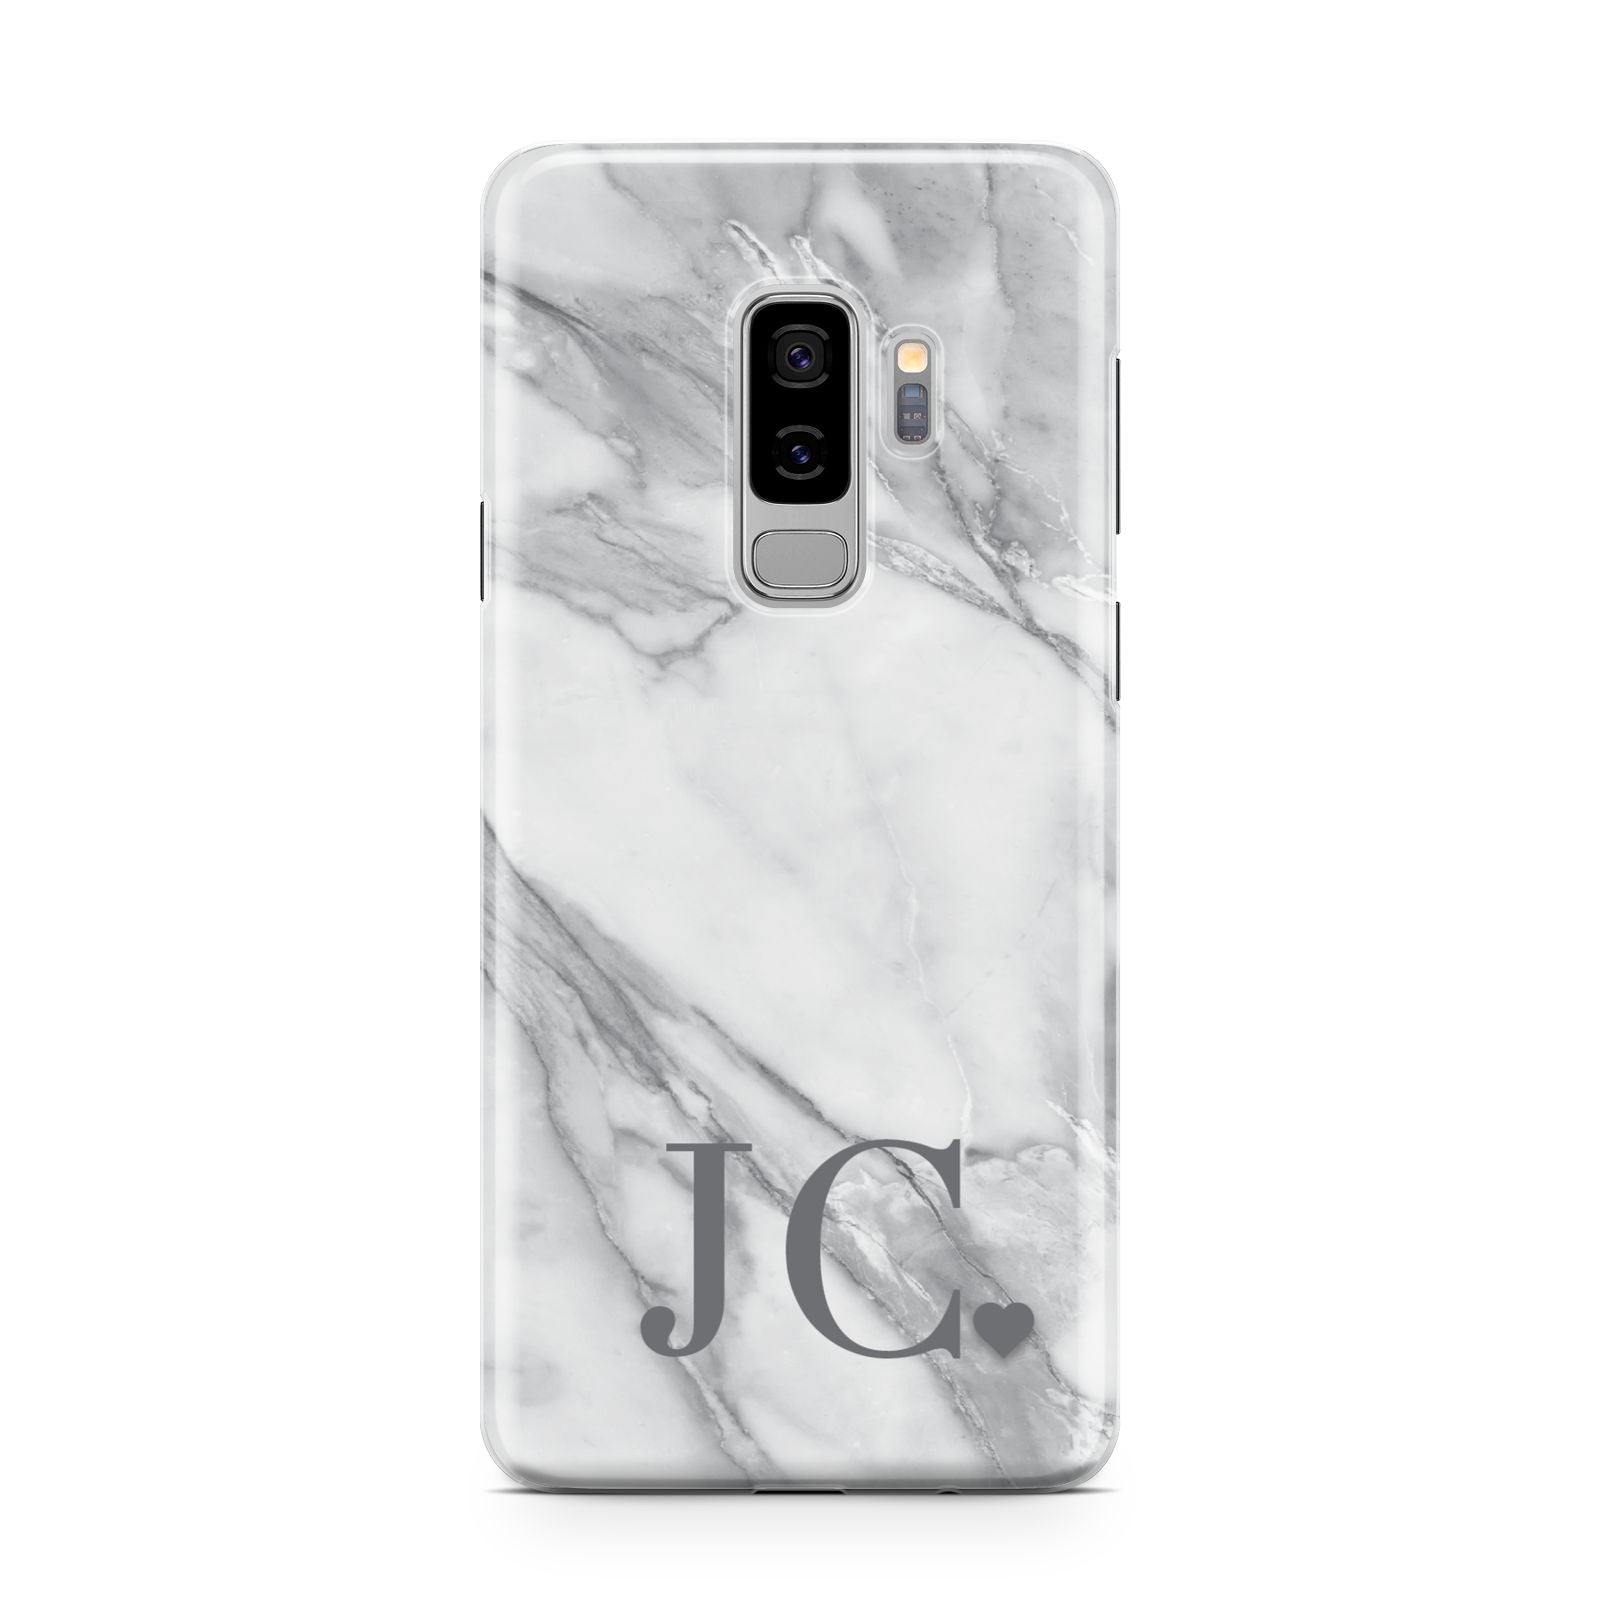 Initials Love Heart Samsung Galaxy S9 Plus Case on Silver phone